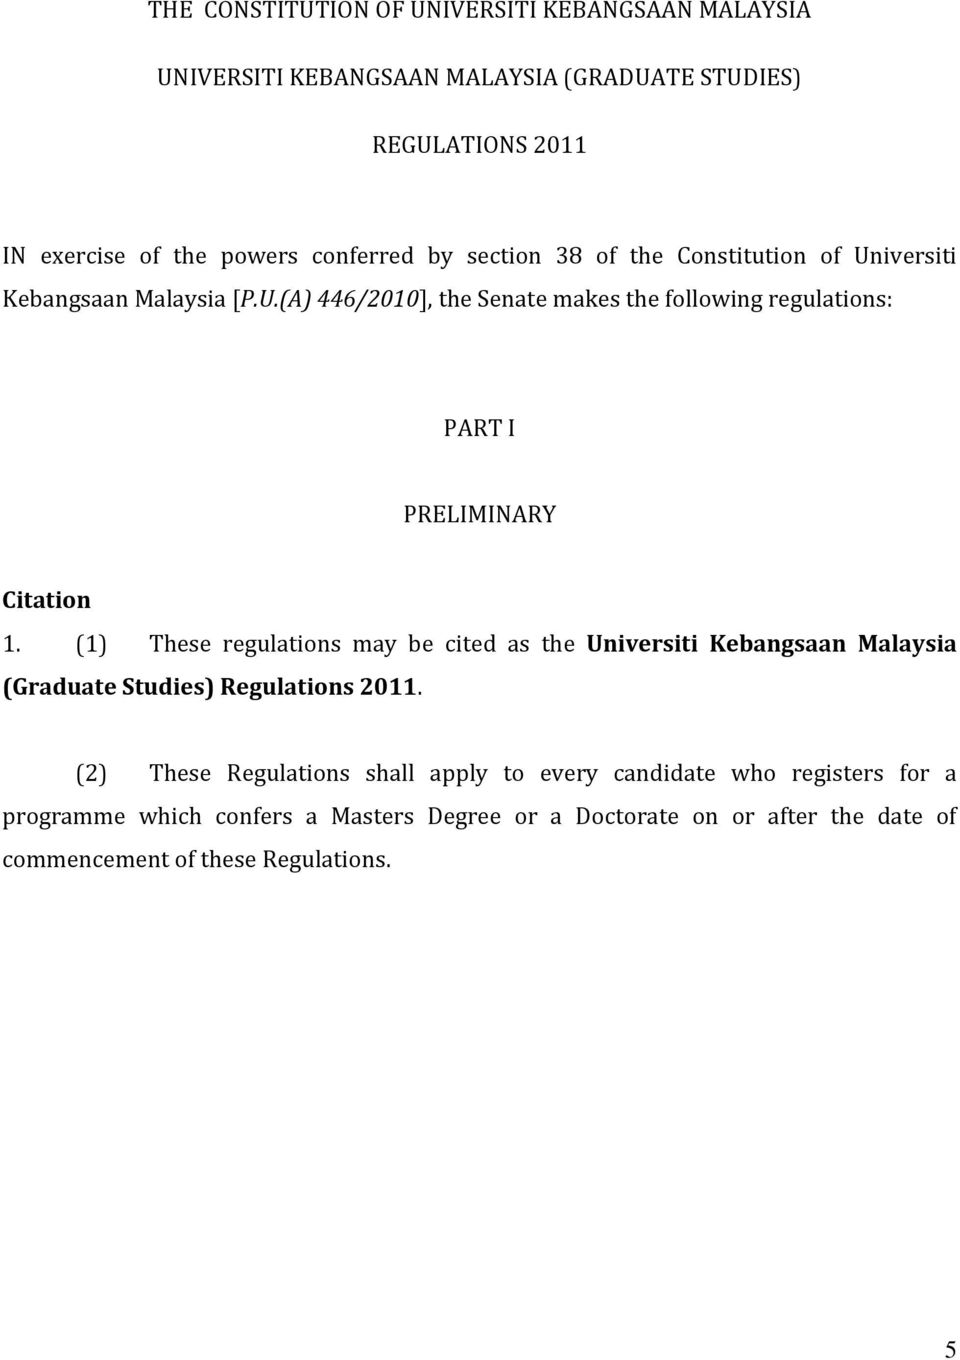 (1) These regulations may be cited as the Universiti Kebangsaan Malaysia (Graduate Studies) Regulations 2011.